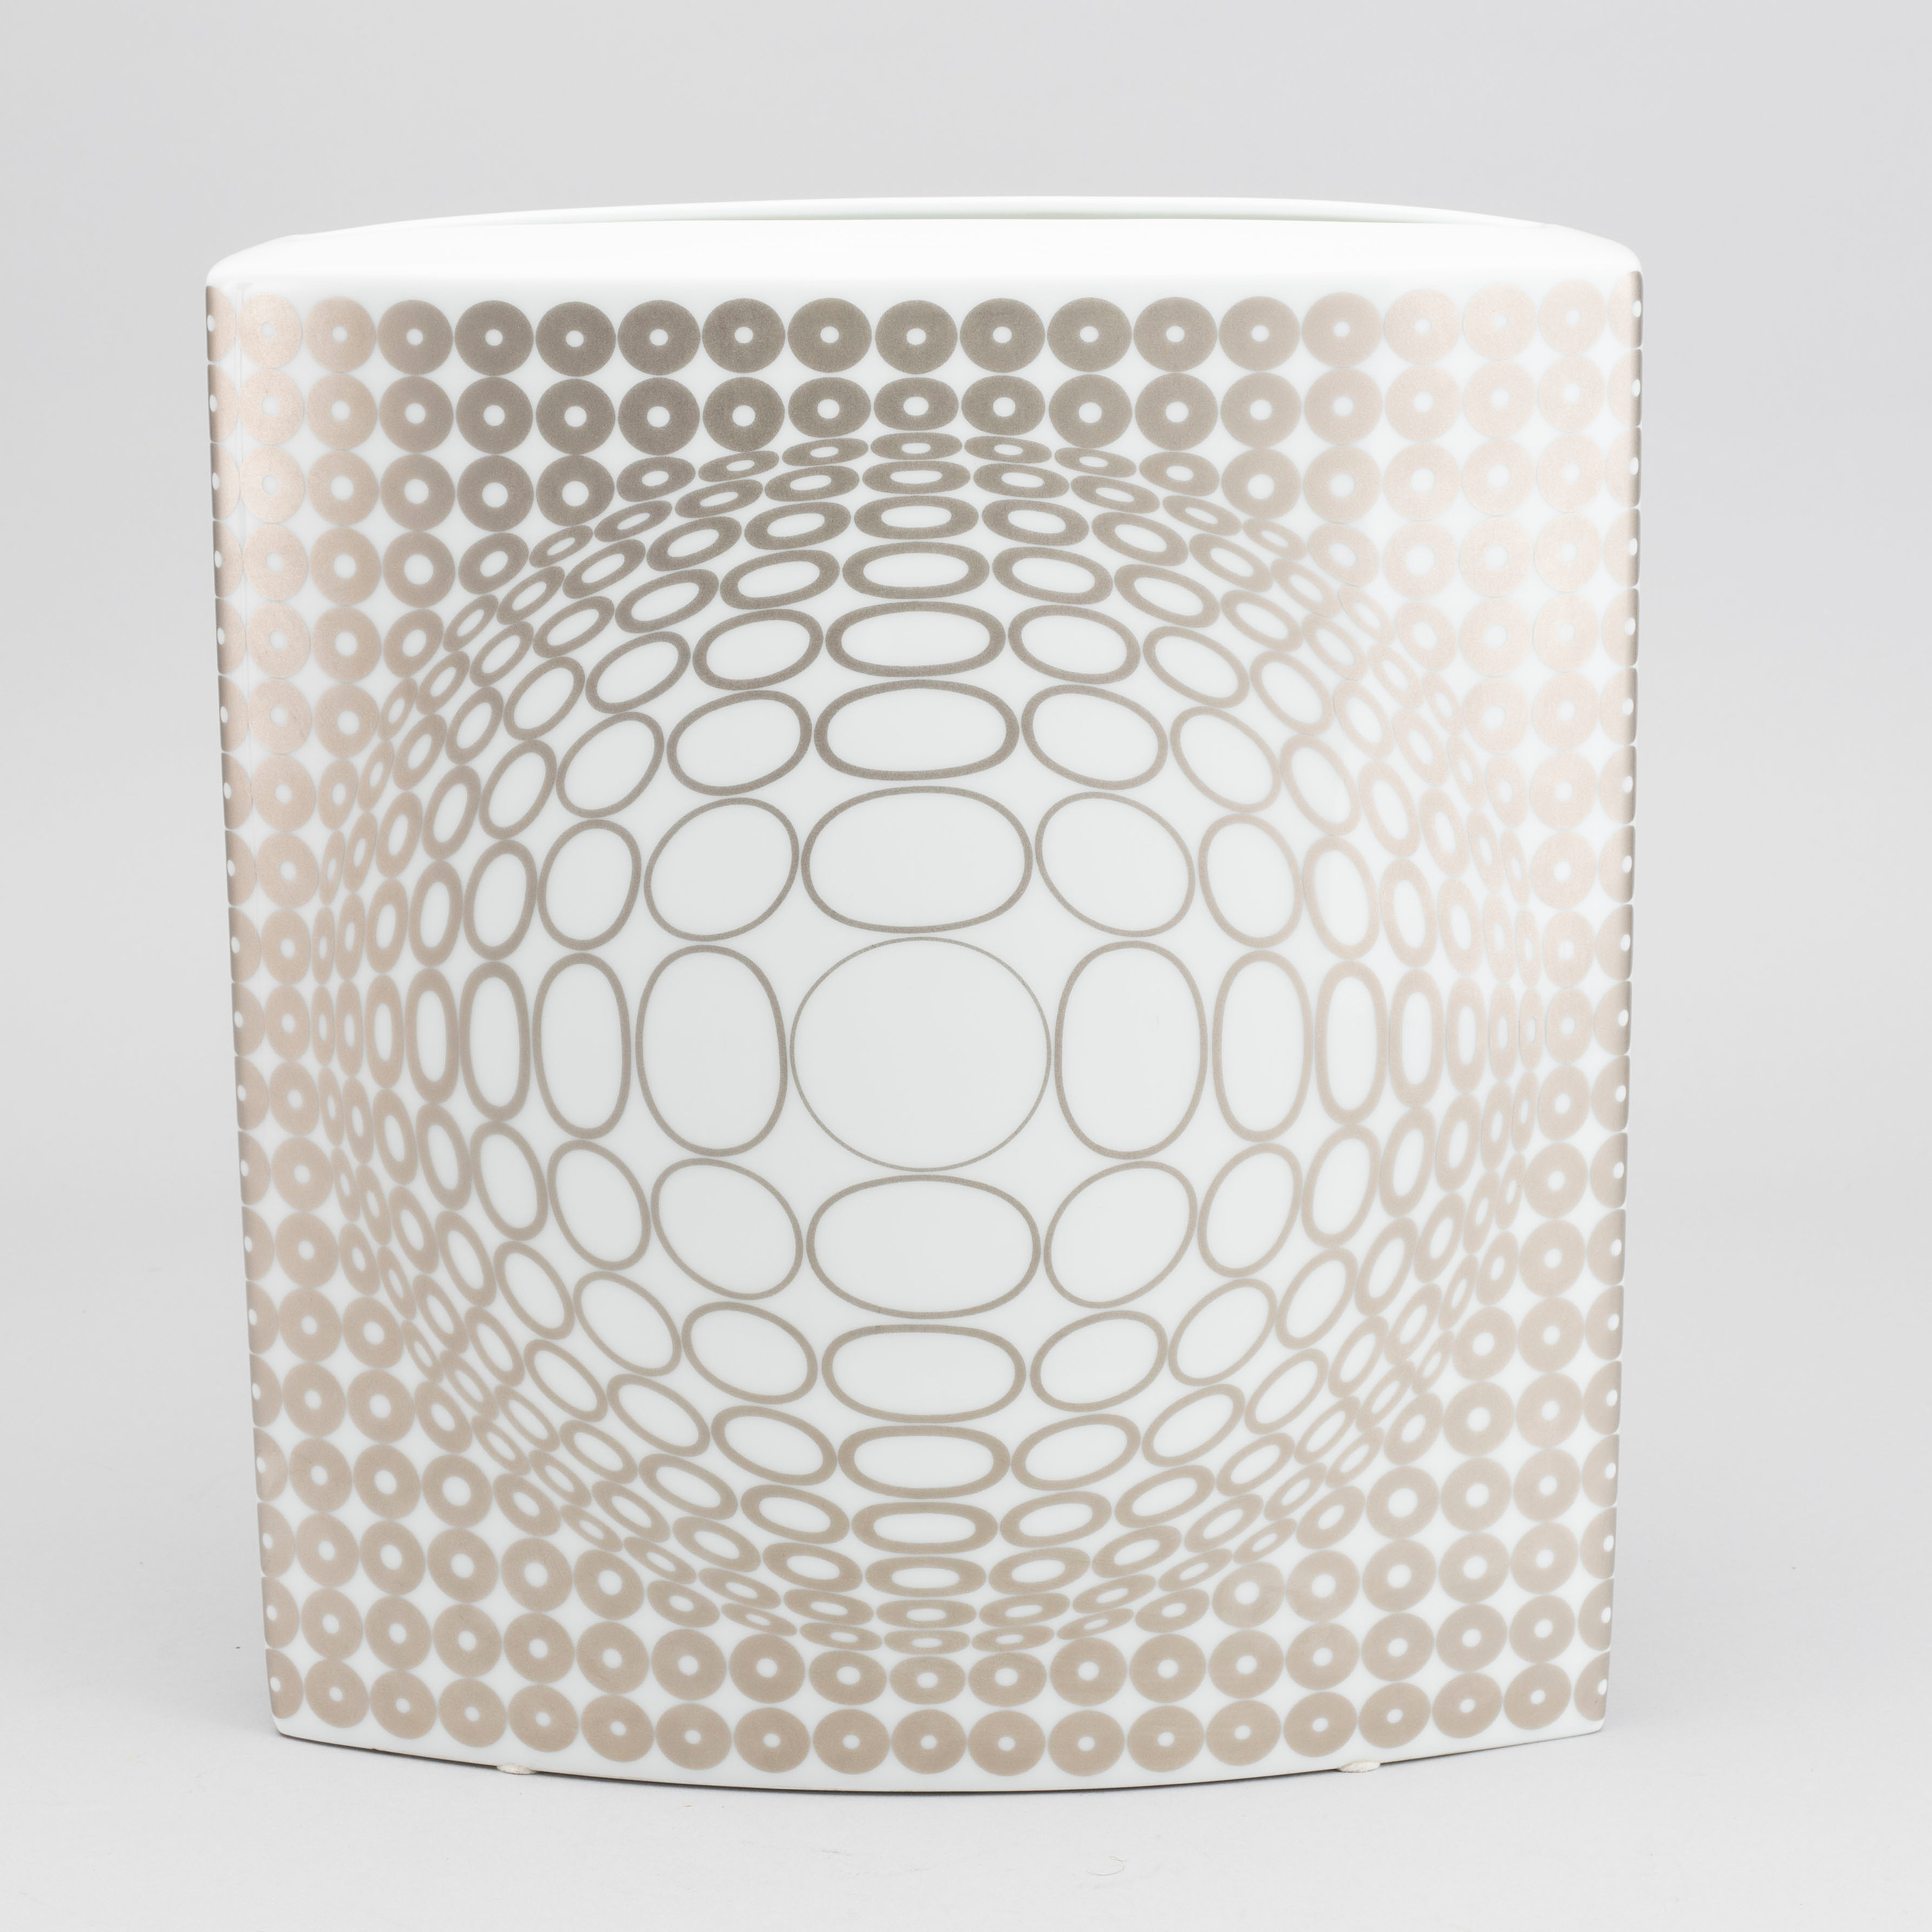 A VICTOR VASARELY PORCELAIN VASE BY ROSENTHAL, Limited